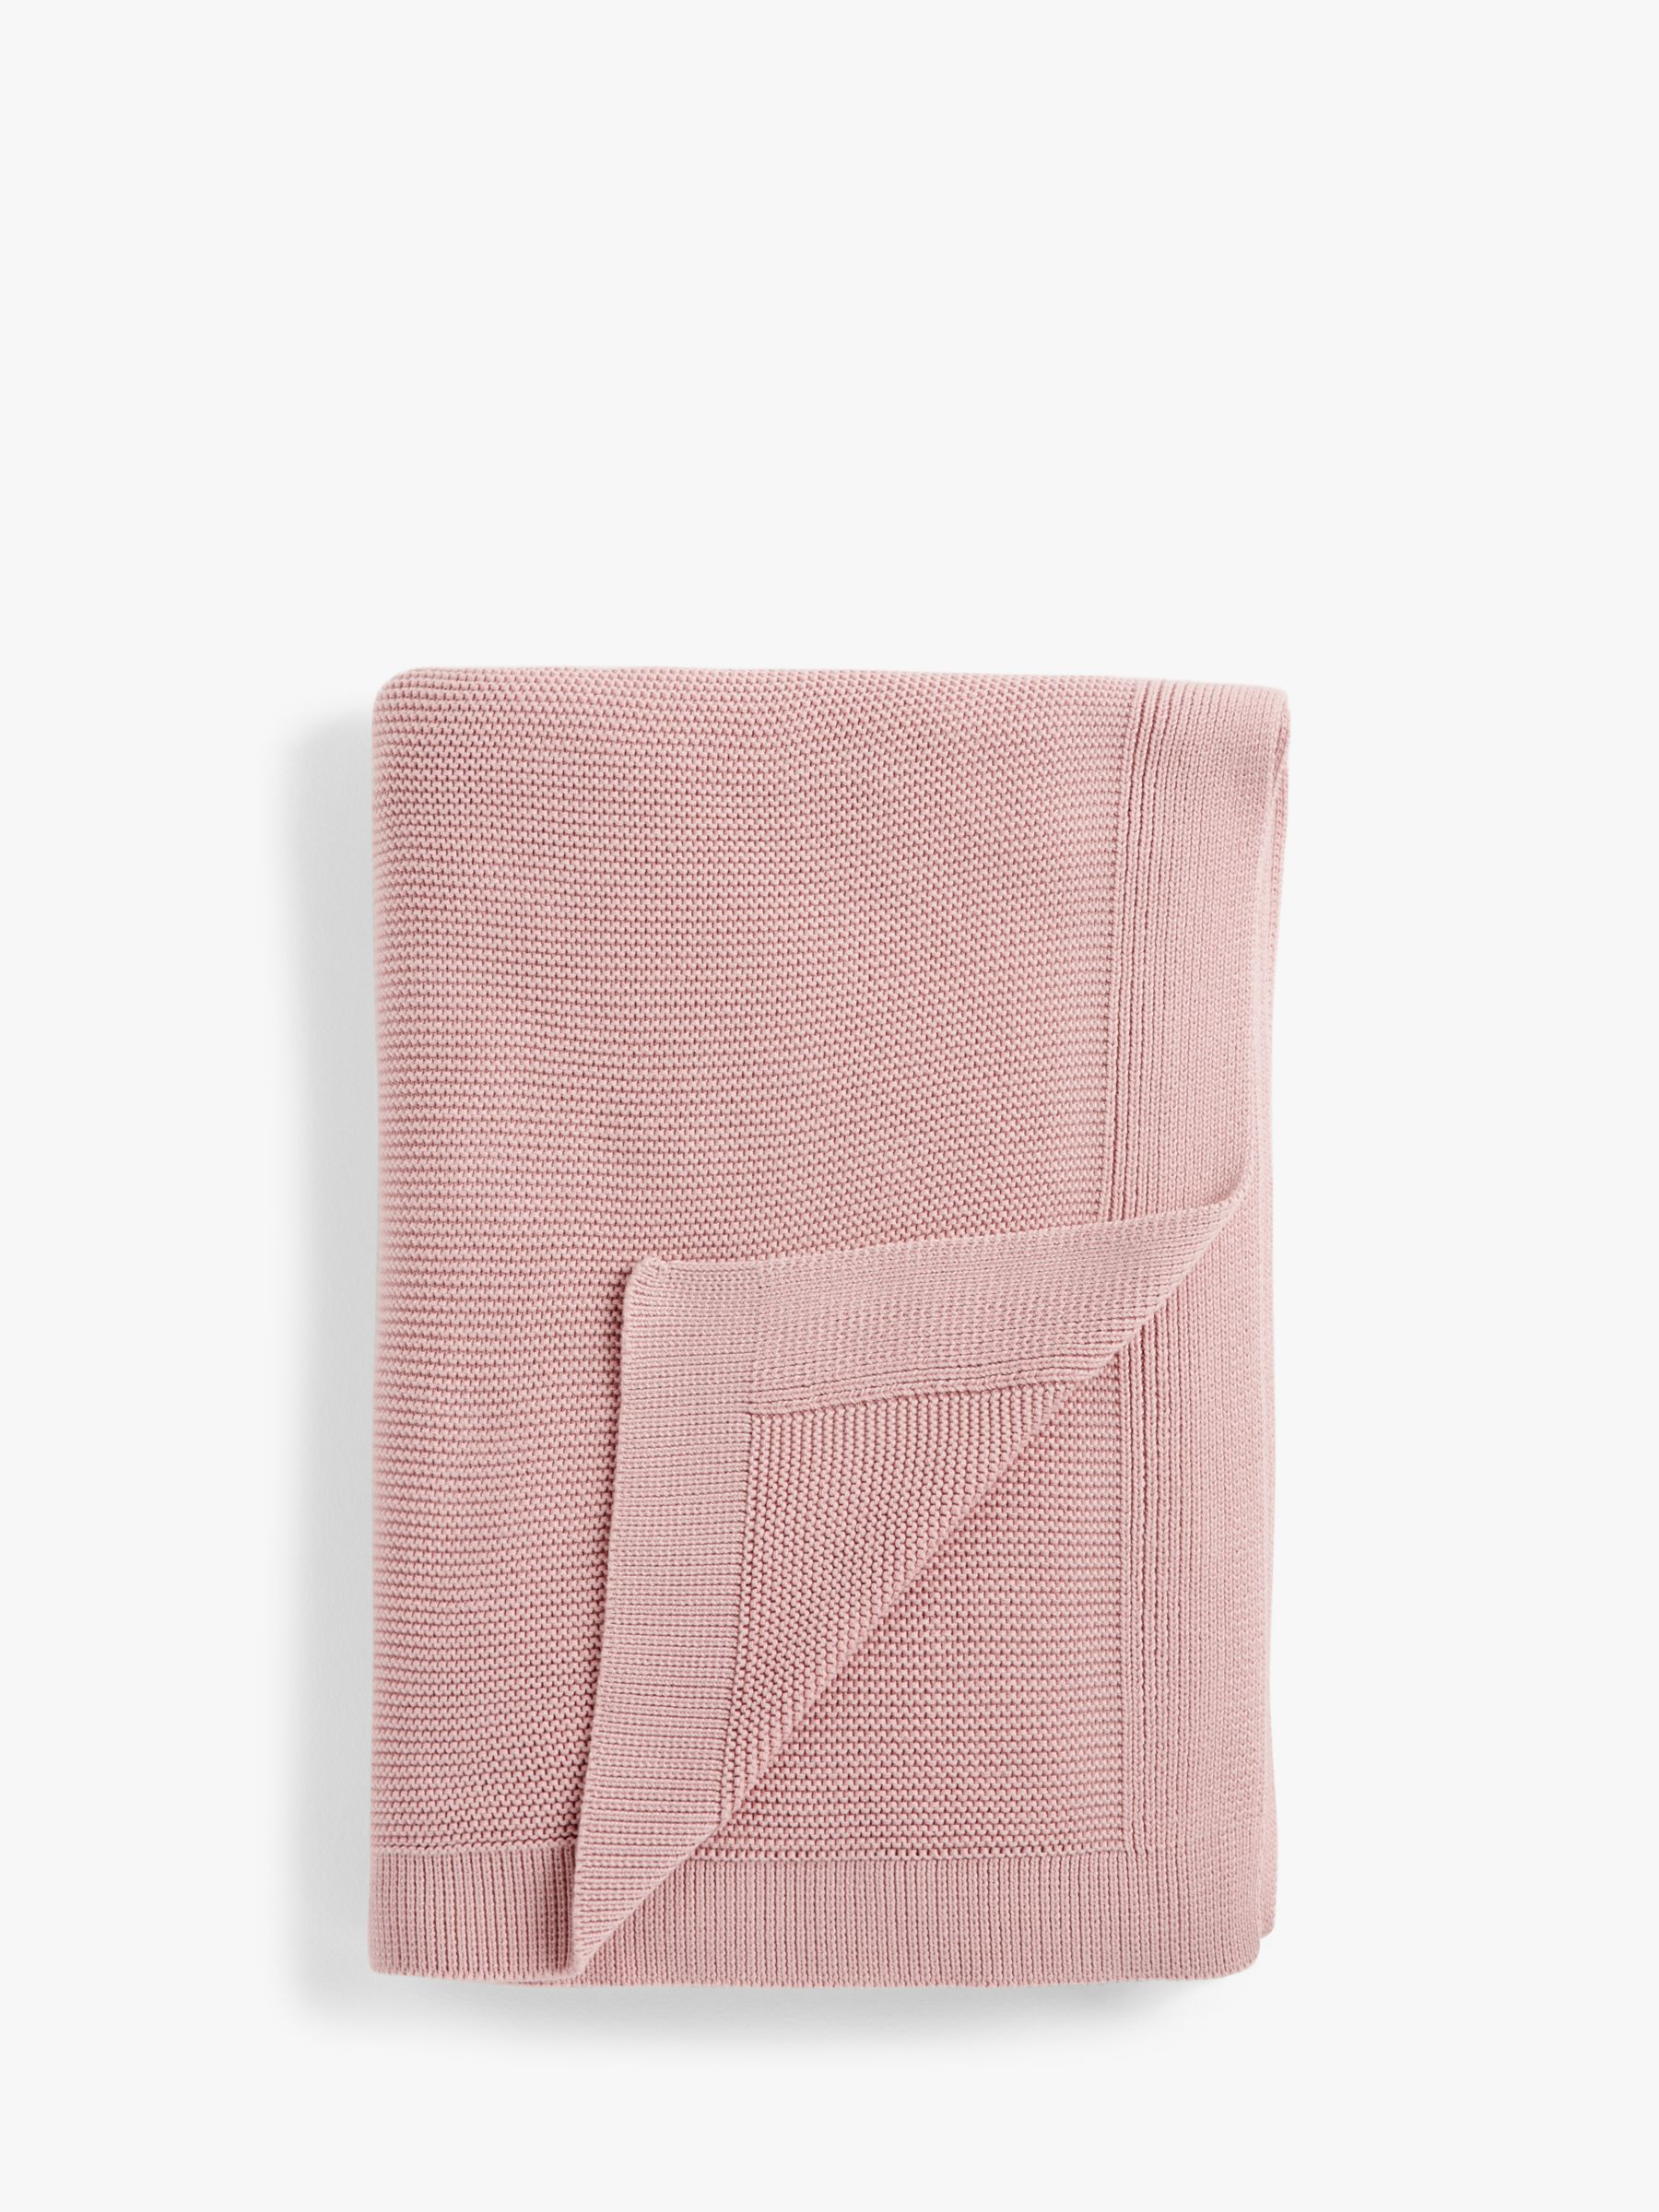 Buy John Lewis & Partners Rye Plain Knit Throw, Plaster Online at johnlewis.com